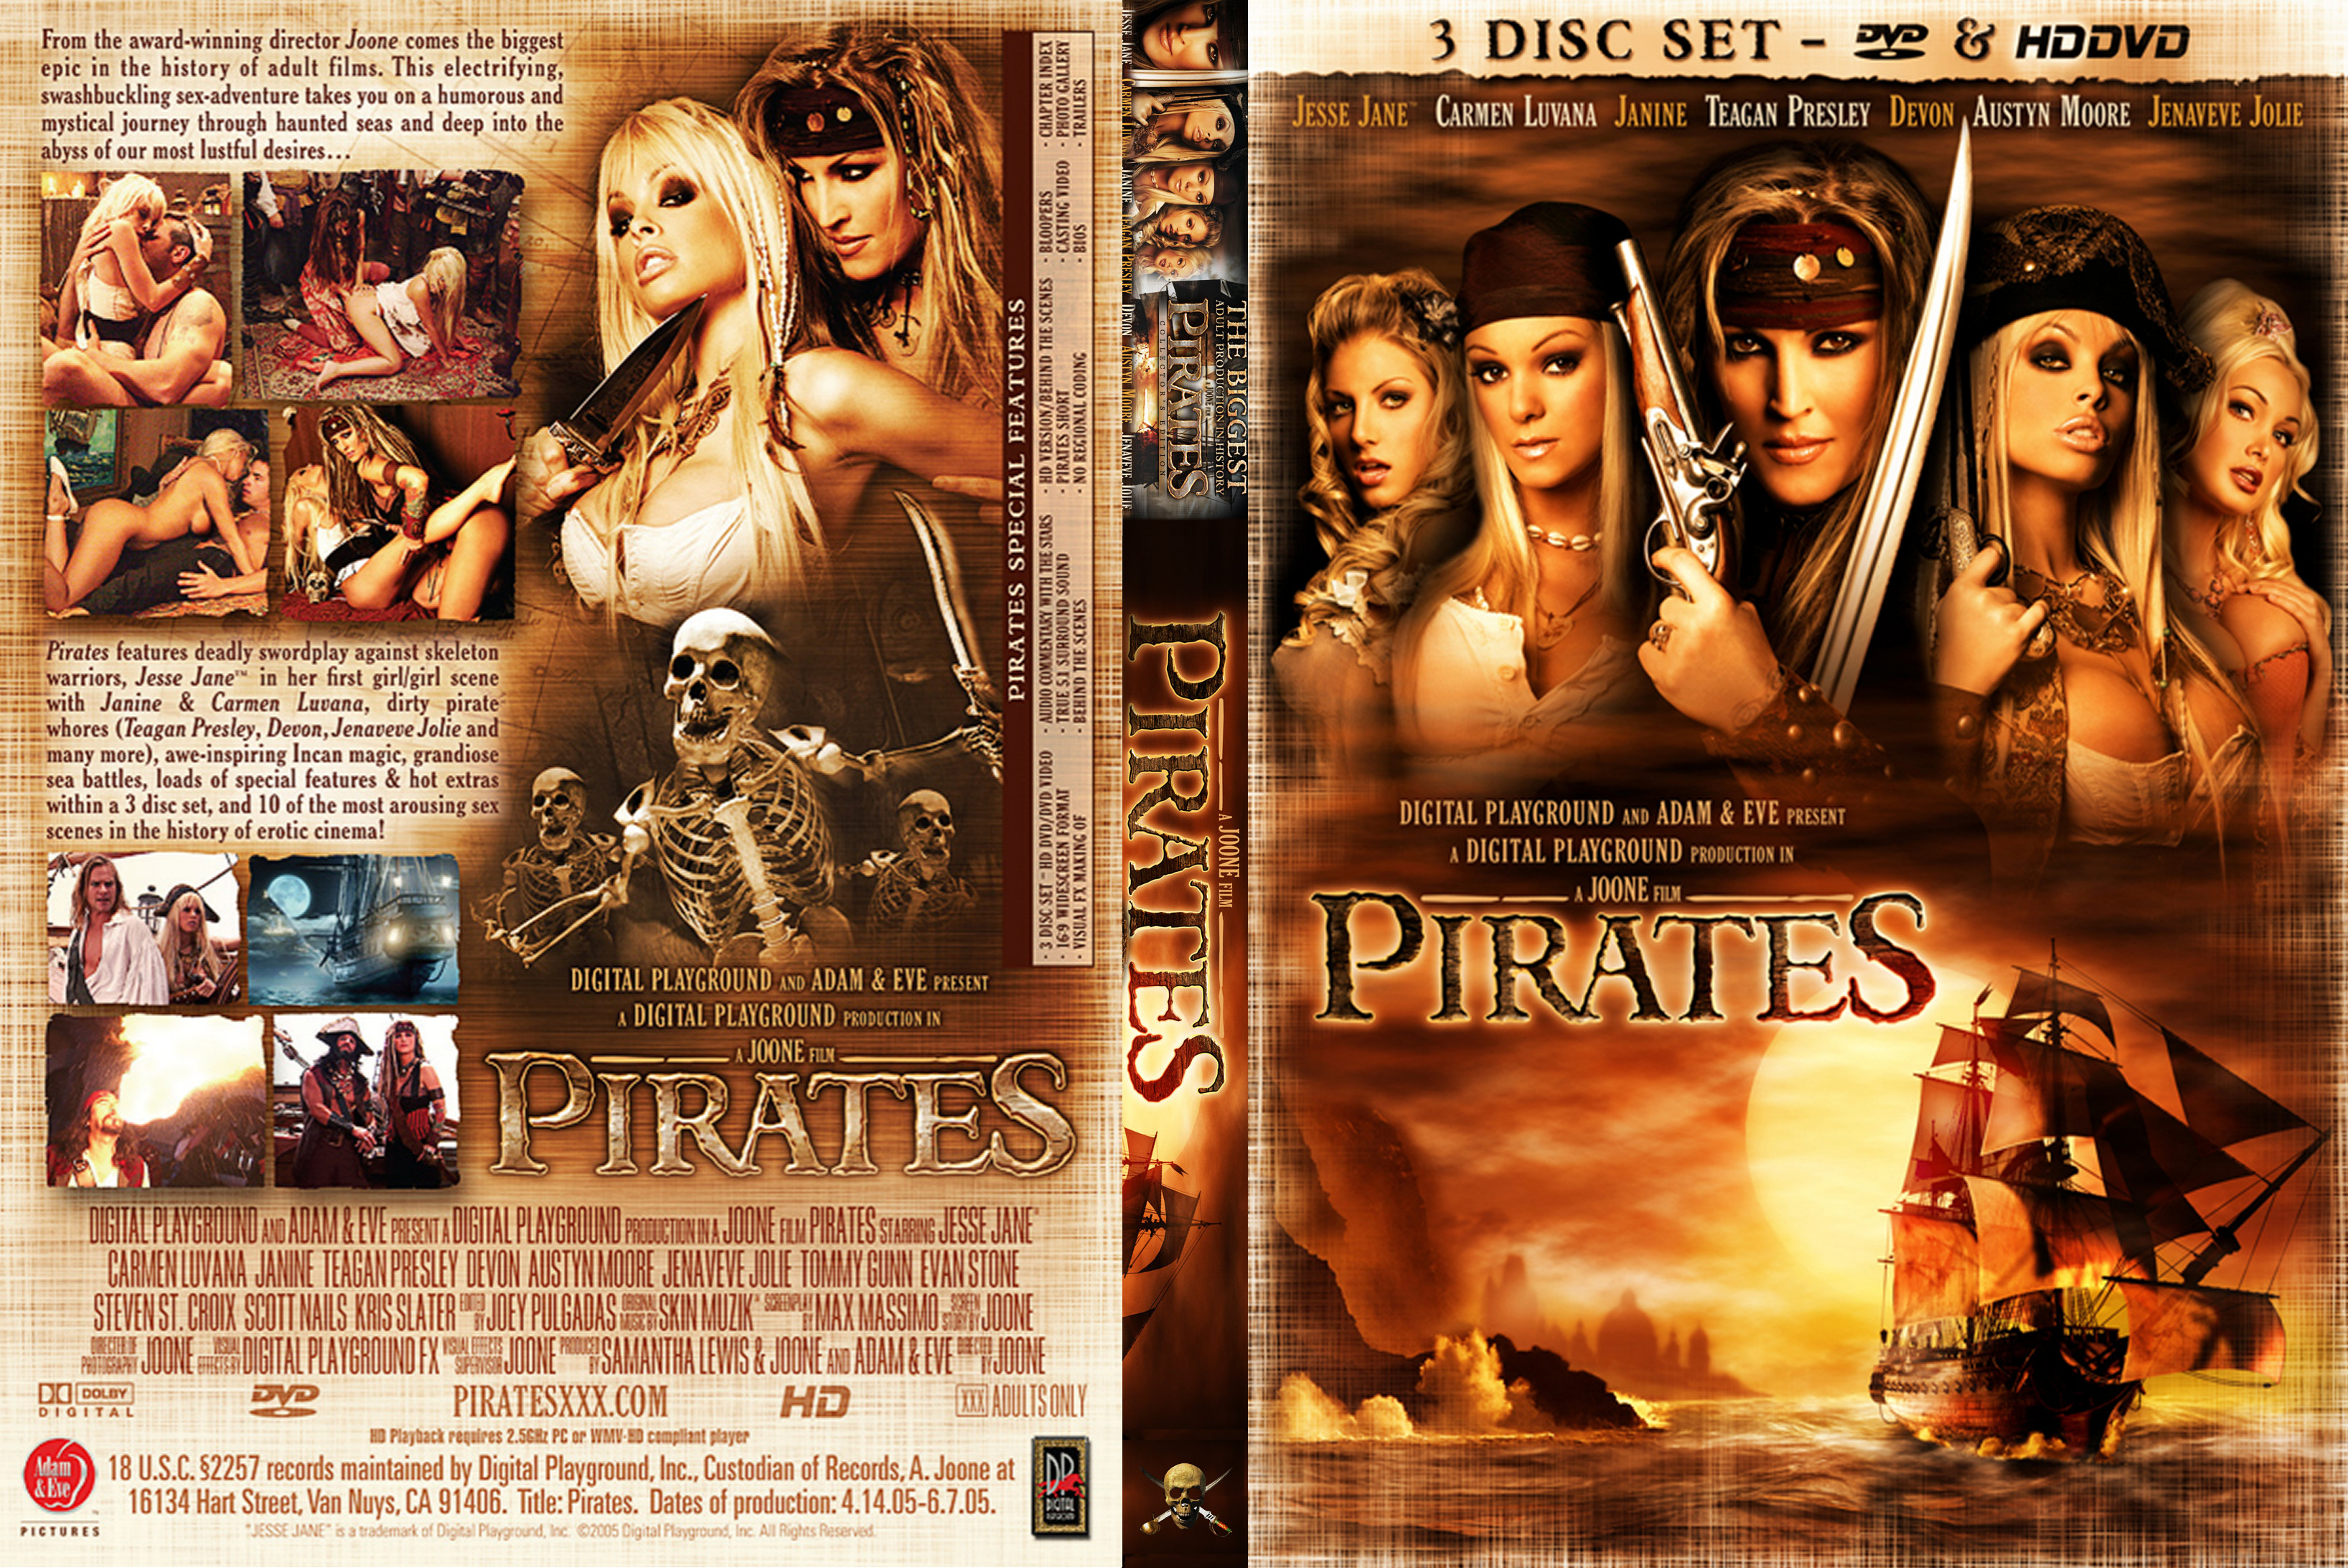 Adult pirates movie scenes porn shaved woman